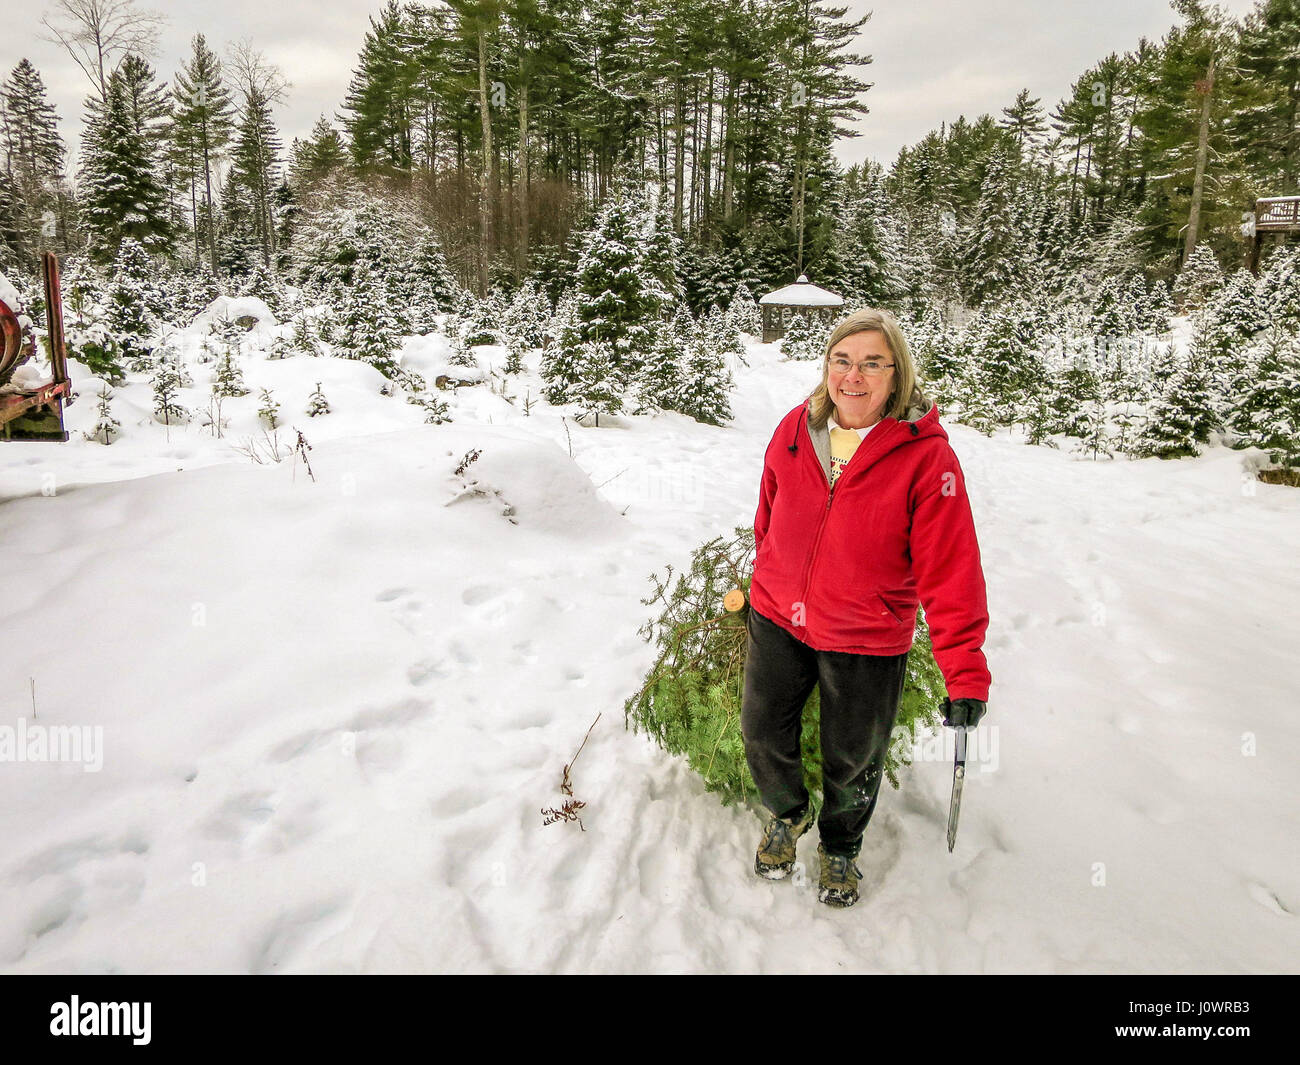 Christmas Tree Farm Usa Stock Photos & Christmas Tree Farm Usa Stock ...